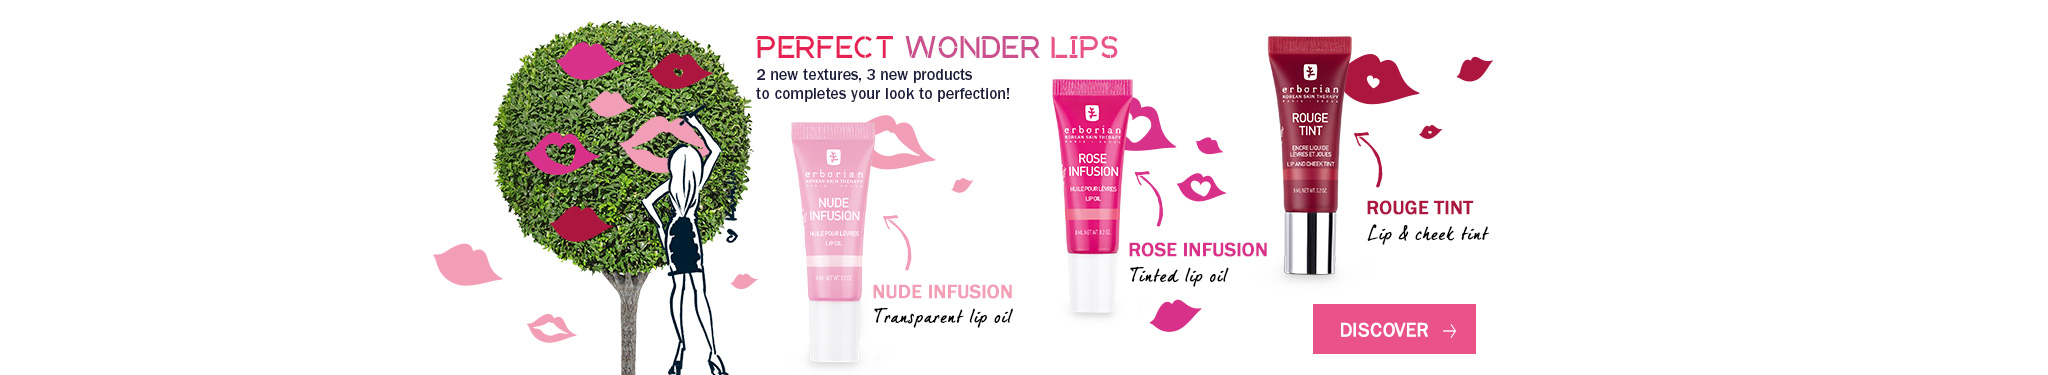 Our new tinted lip oil Lip Love for Perfect wonder lips